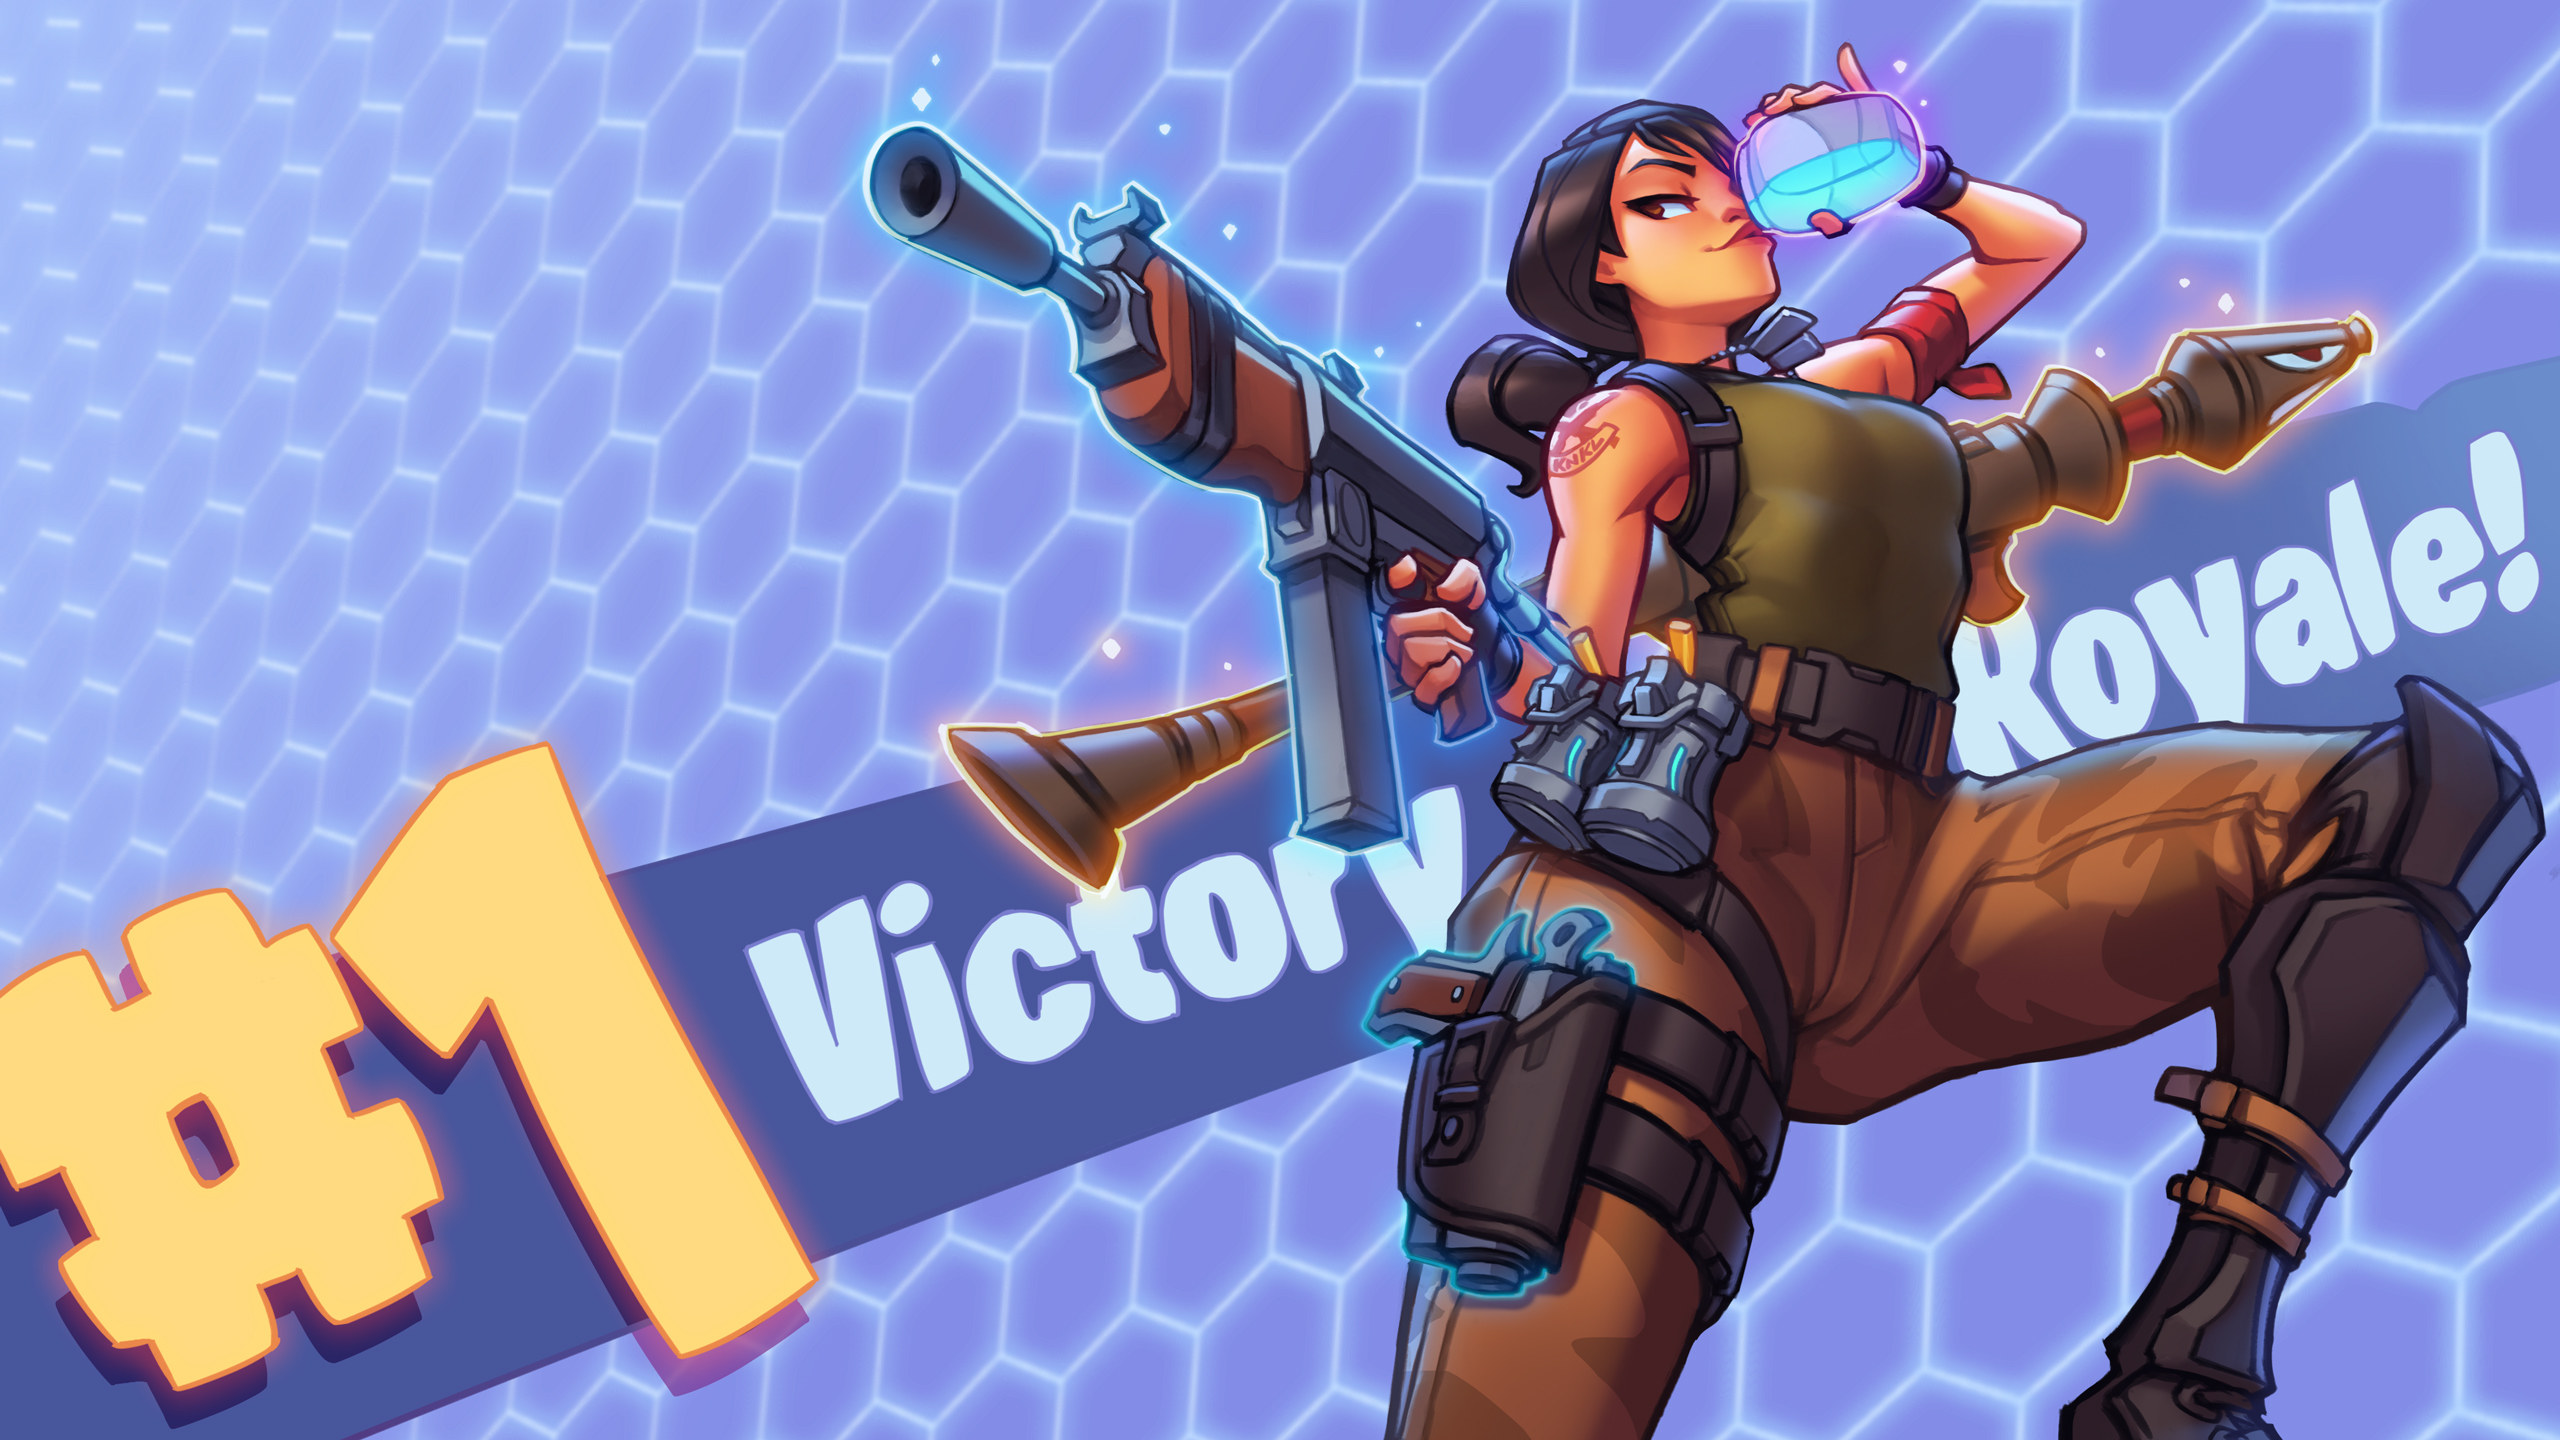 Fortnite   2018 VICTORY ROYALE  Youtube by KNKL on 2560x1440